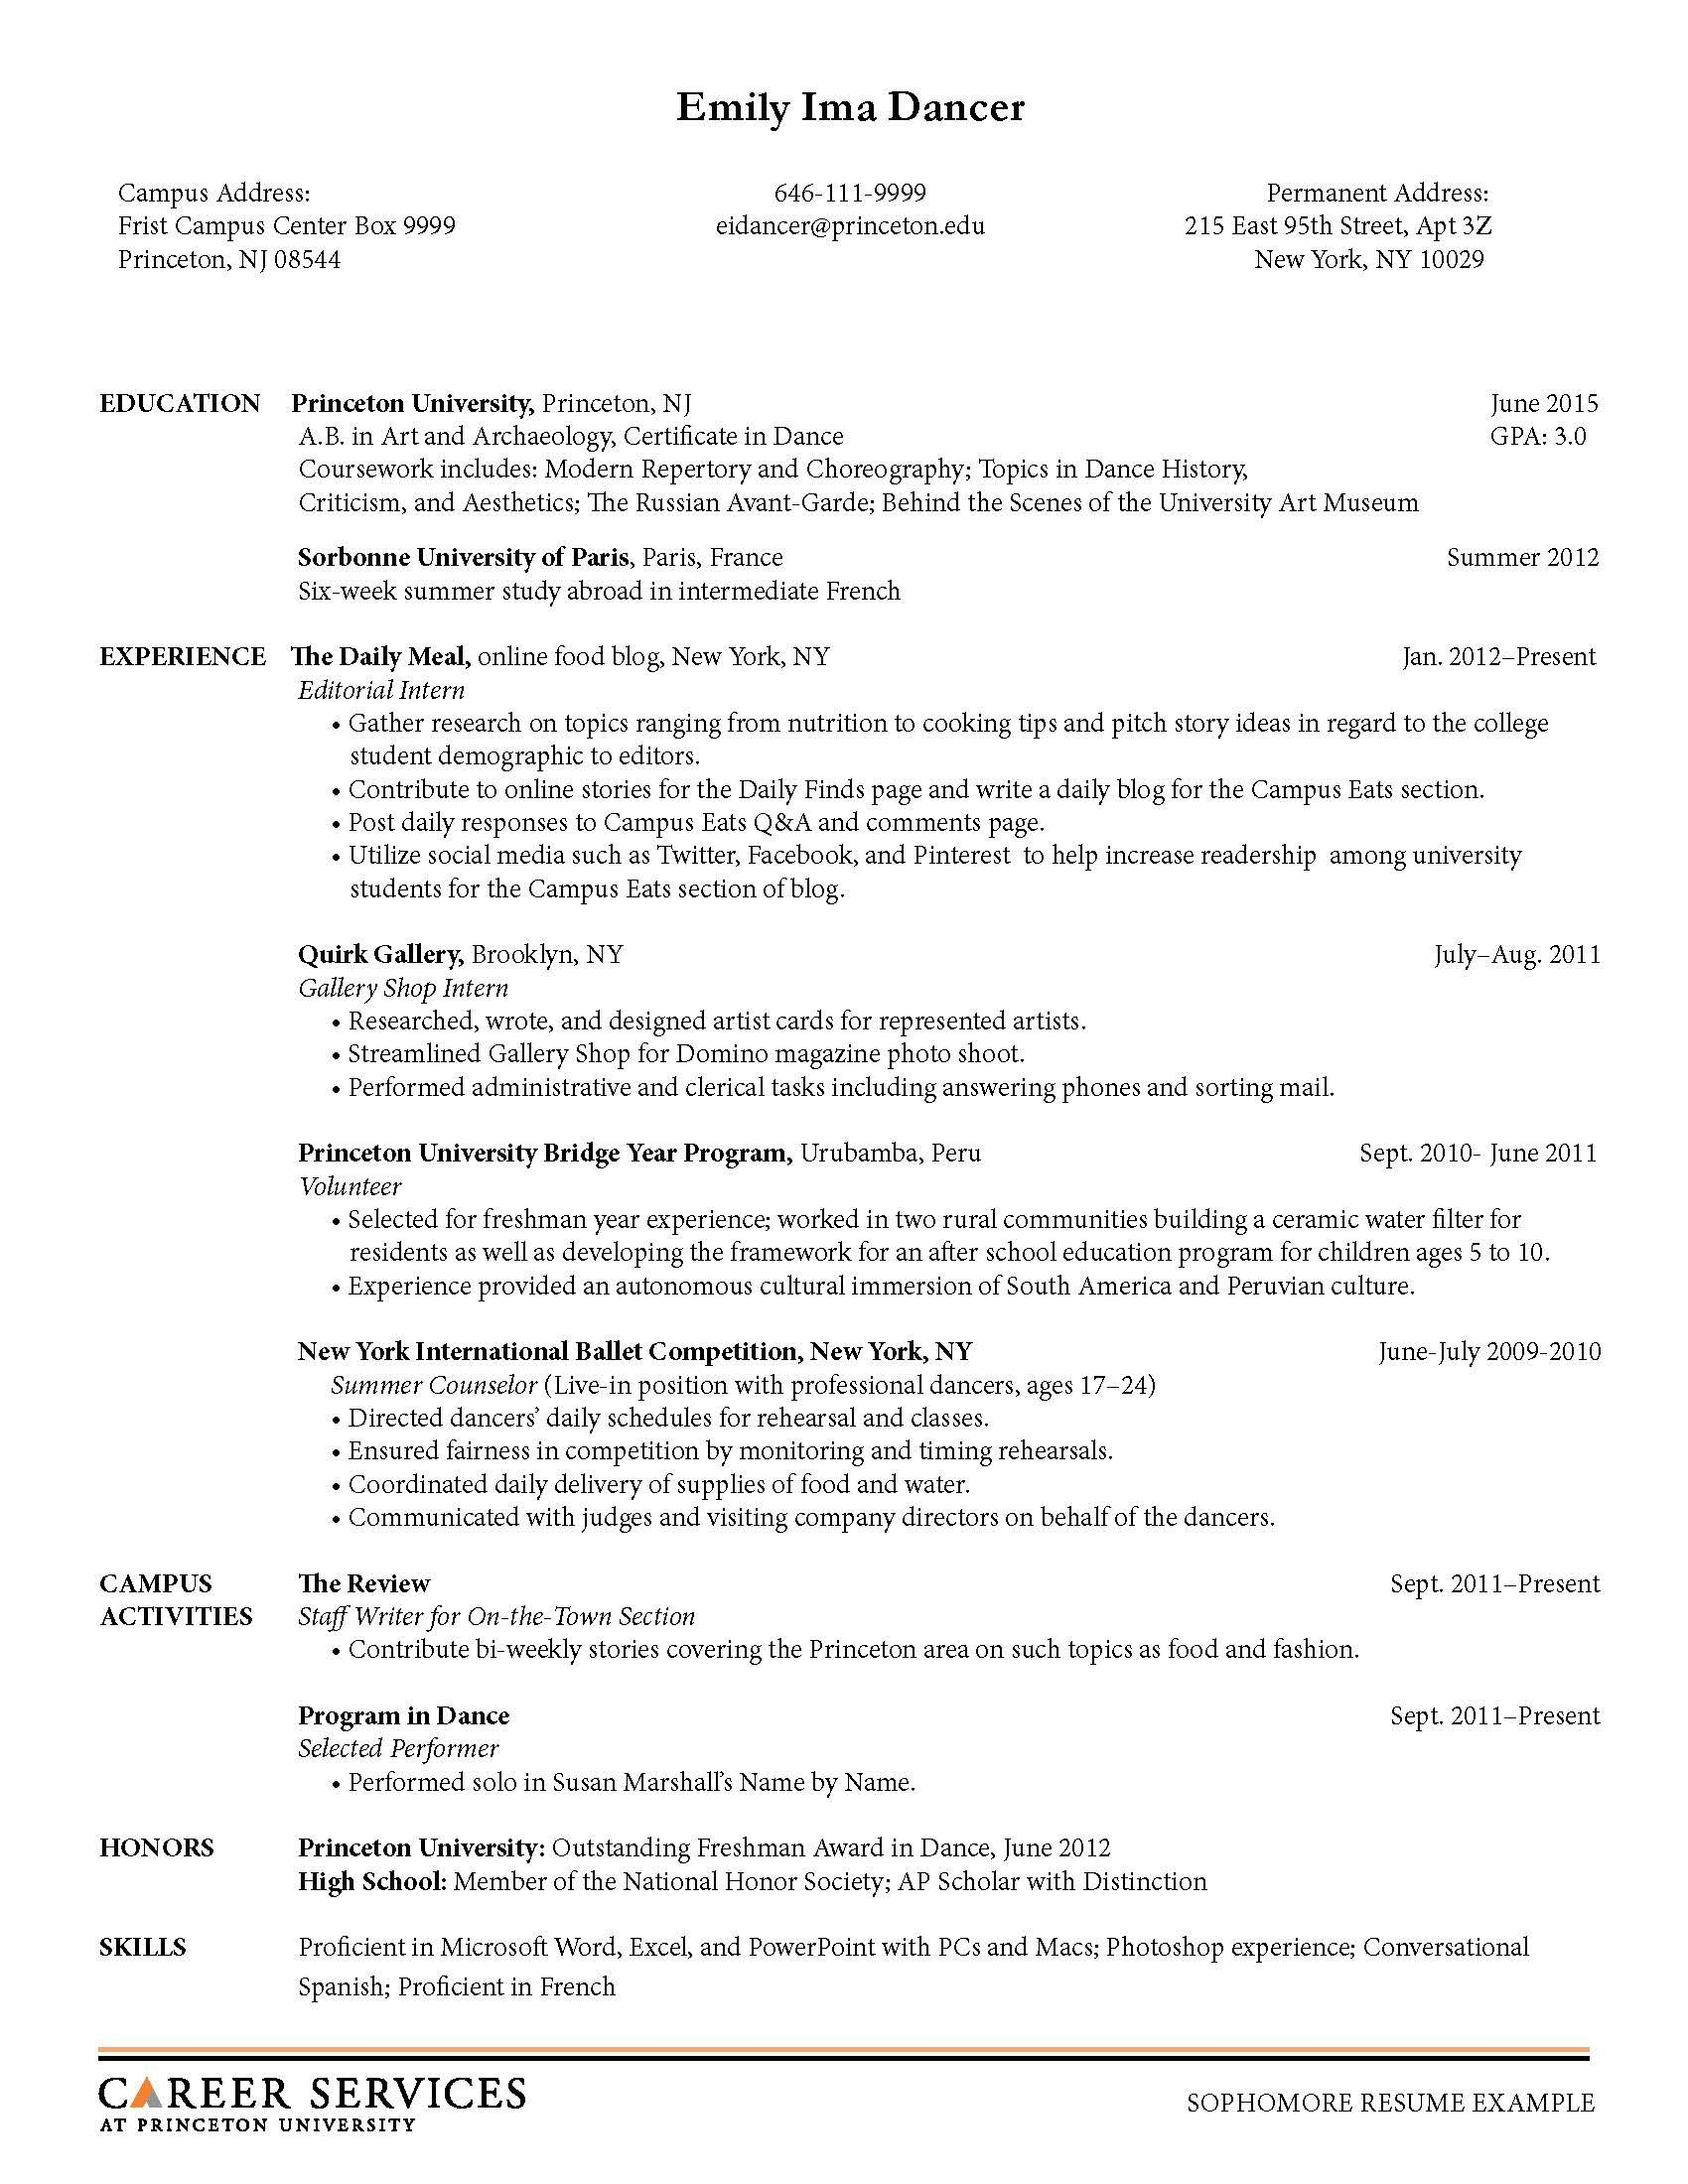 Opposenewapstandardsus  Pleasing Sample Resume Resume And Career On Pinterest With Great Sample Ba Resume Besides Flight Instructor Resume Furthermore Resume Service Online With Cute Resume Outline For High School Students Also Federal Resume Guide In Addition Examples Of Basic Resumes And Cashier Duties On Resume As Well As Controller Resume Example Additionally Recruiter Resume Example From Pinterestcom With Opposenewapstandardsus  Great Sample Resume Resume And Career On Pinterest With Cute Sample Ba Resume Besides Flight Instructor Resume Furthermore Resume Service Online And Pleasing Resume Outline For High School Students Also Federal Resume Guide In Addition Examples Of Basic Resumes From Pinterestcom